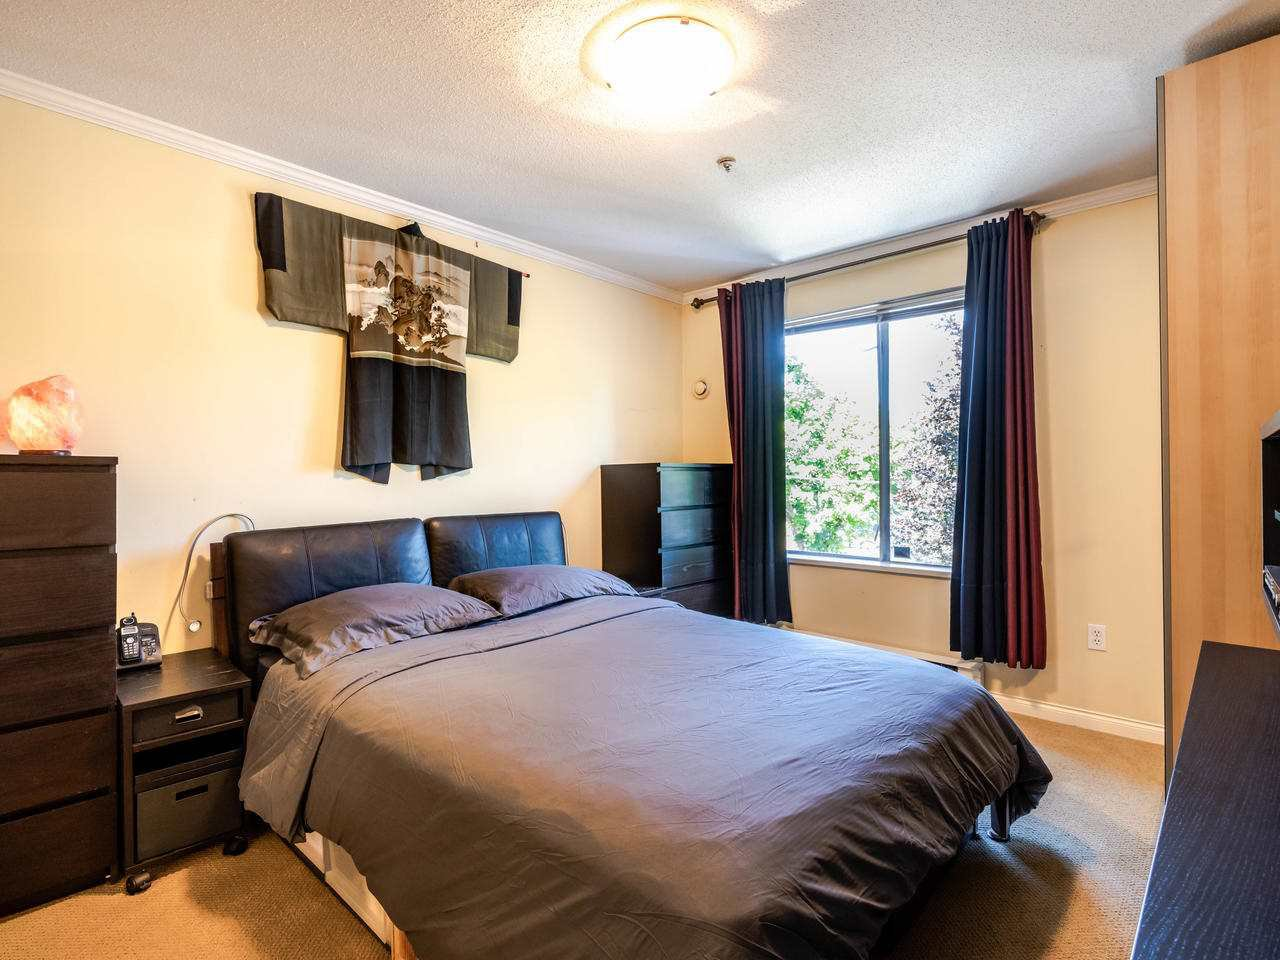 """Photo 22: Photos: 303 2288 W 12TH Avenue in Vancouver: Kitsilano Condo for sale in """"Connaught Point"""" (Vancouver West)  : MLS®# R2494985"""